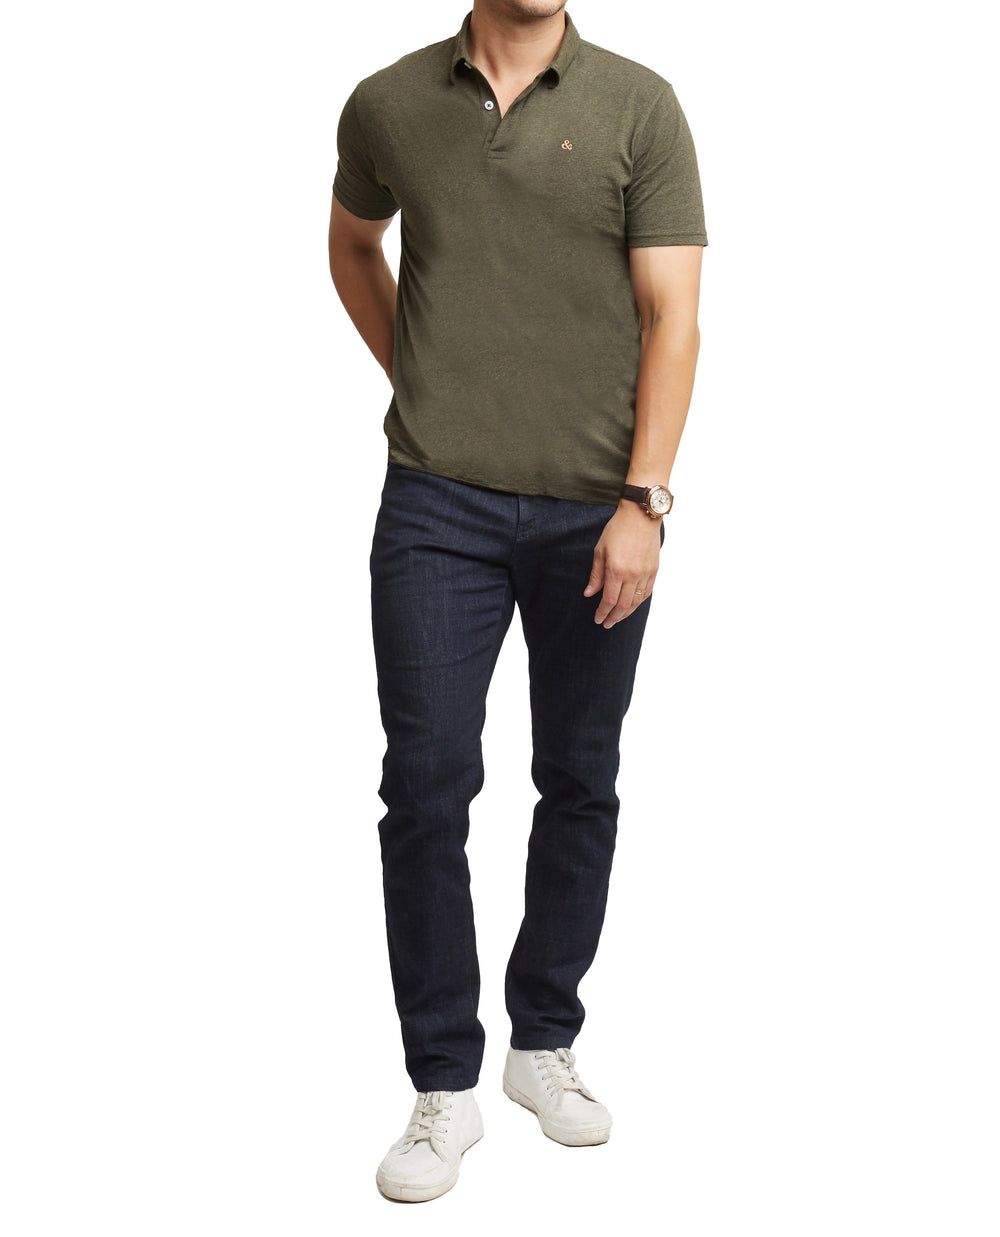 H&F Short Sleeve Green Polo, Army Green Short Sleeve Polo, Lightweight Polo Shirt, 4 Way Stretch Polo Shirt